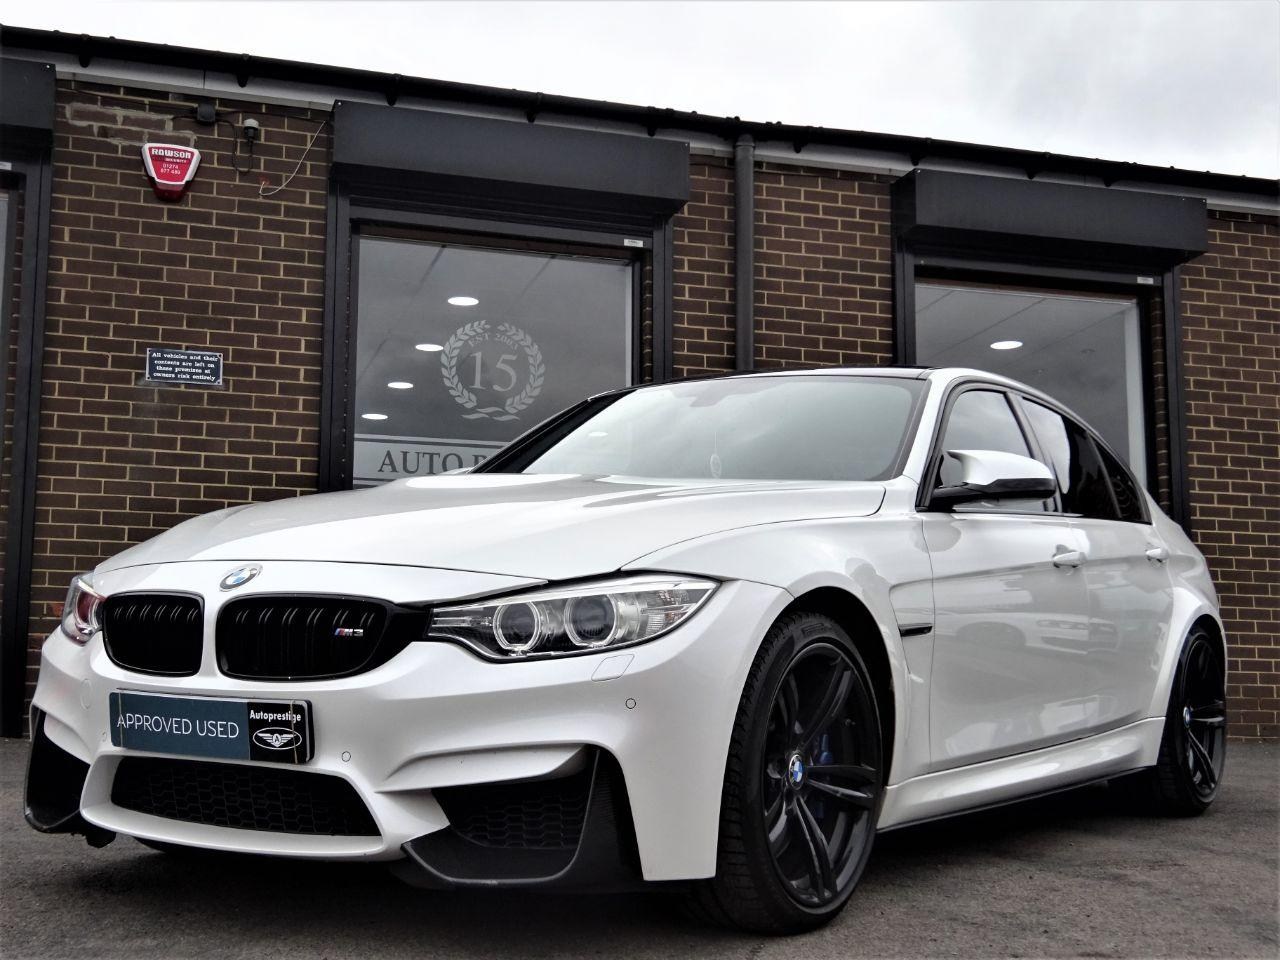 BMW M3 3.0 4dr DCT WITH EXTRAS MINERAL WHITE Saloon Petrol White at Autoprestige Bradford